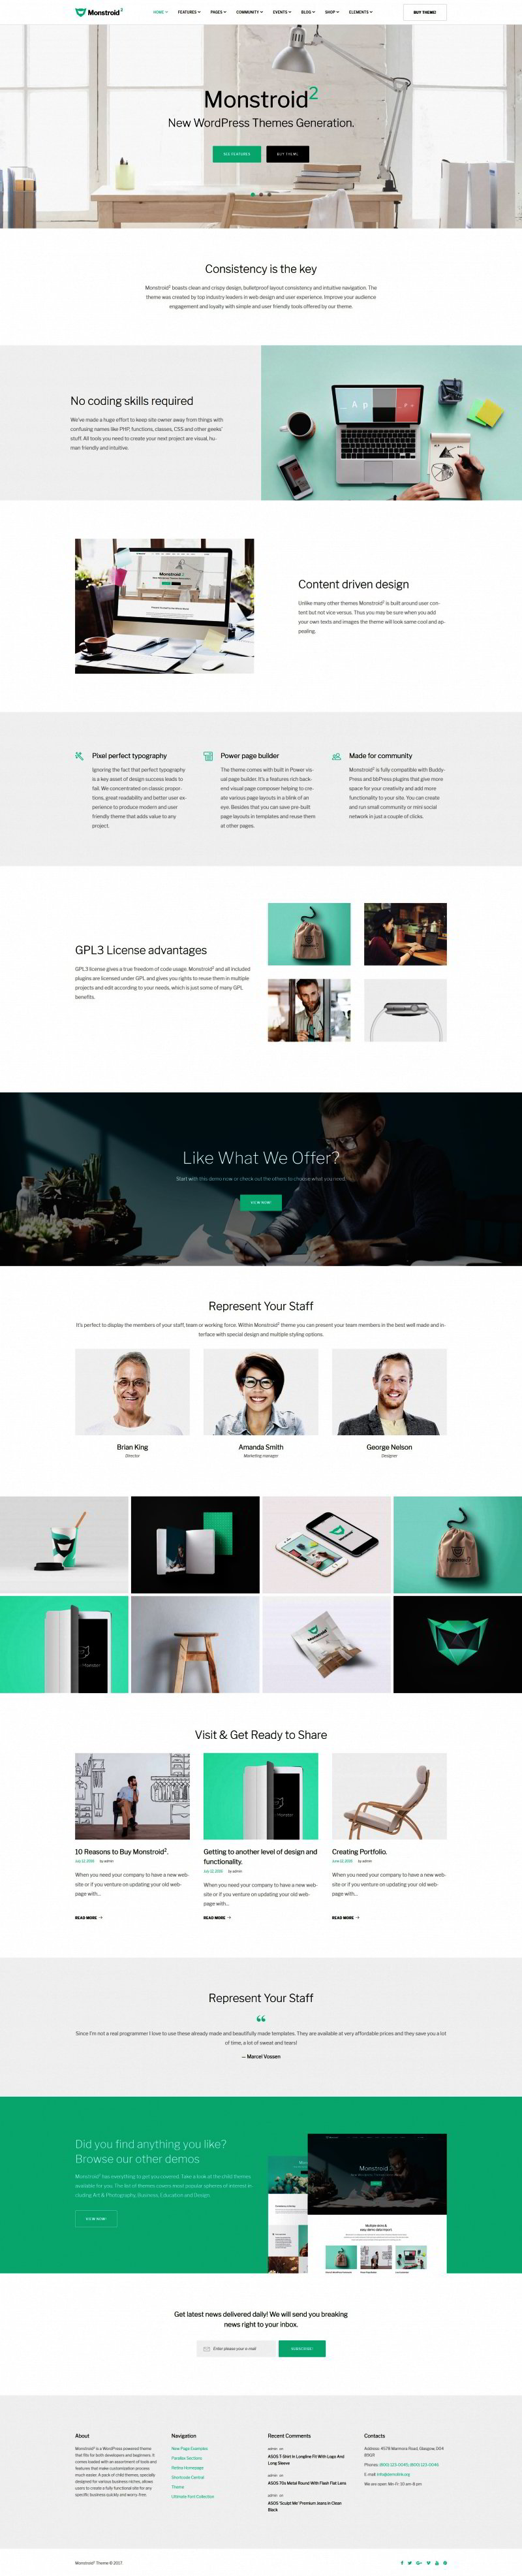 Monstroid2 - Multipurpose WordPress Theme